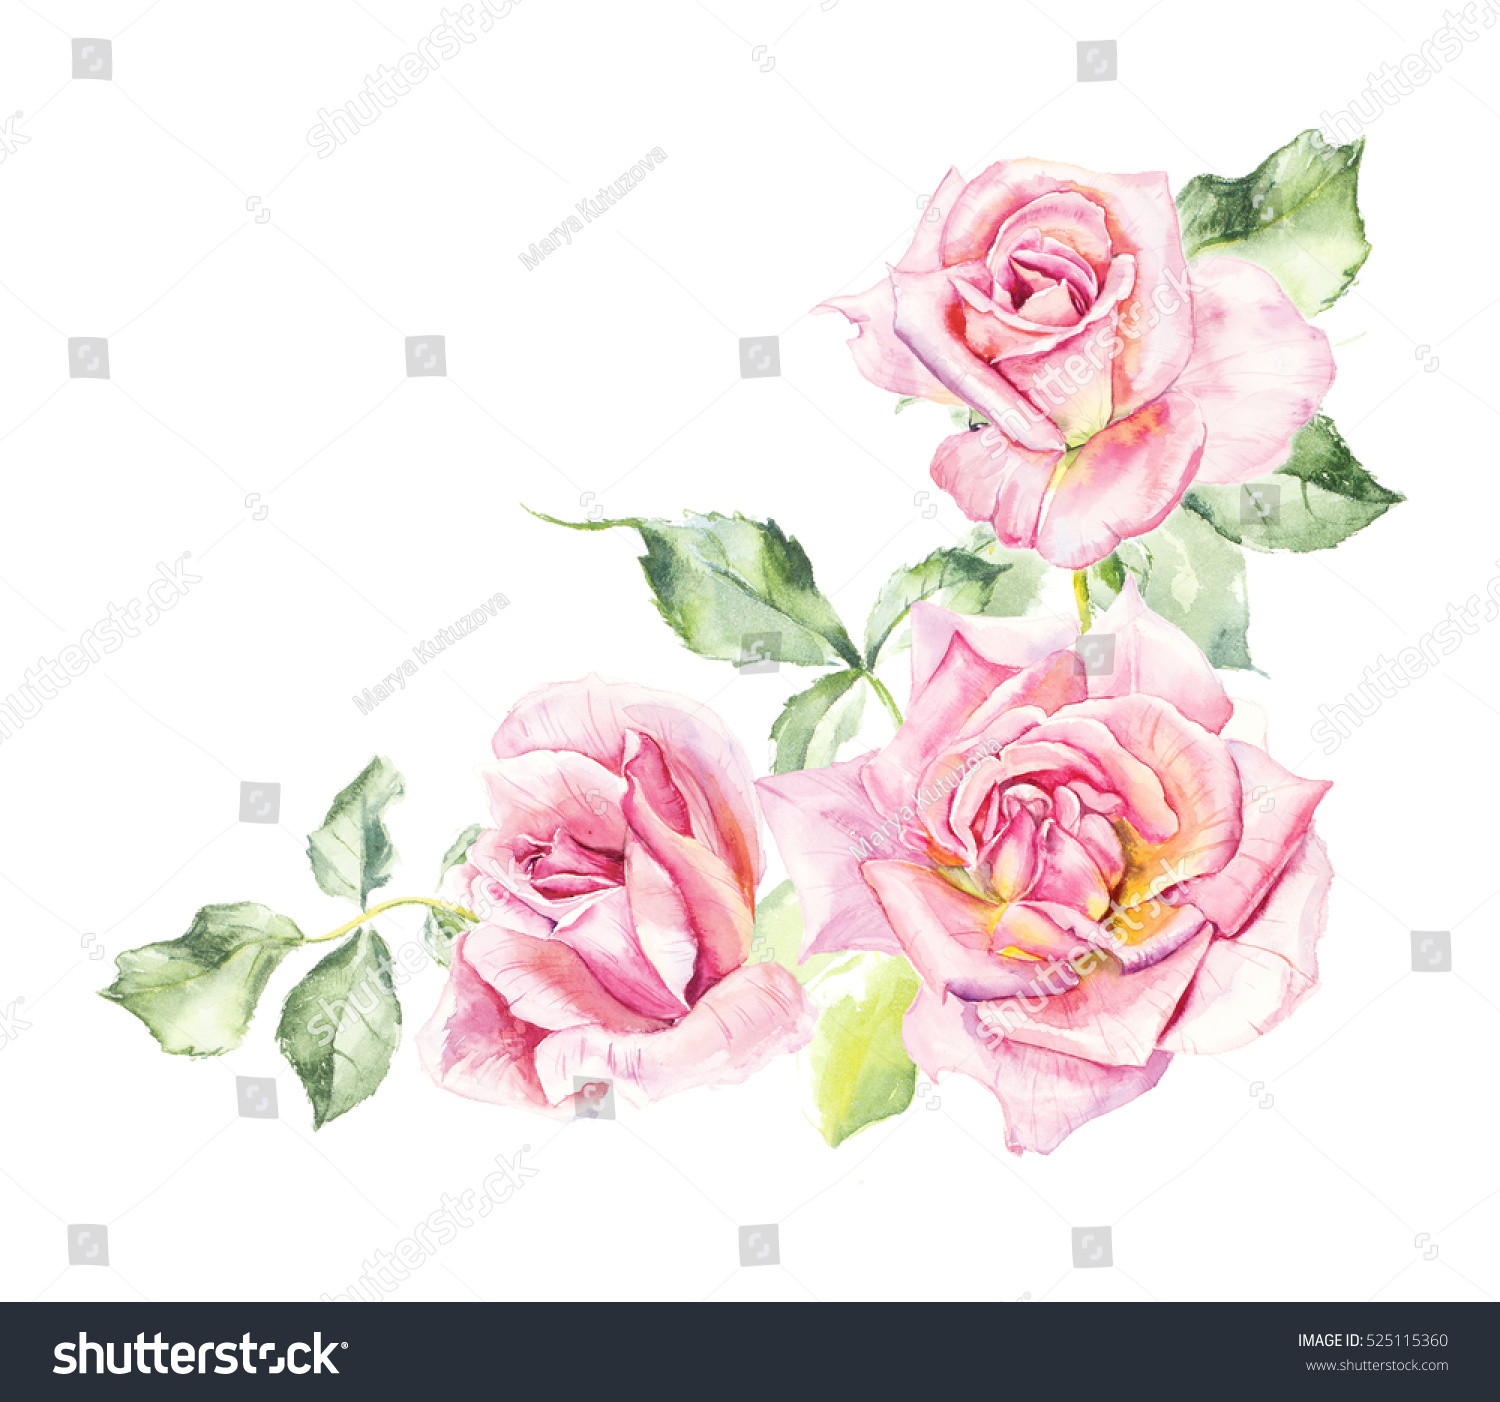 Painting Of Rose Images